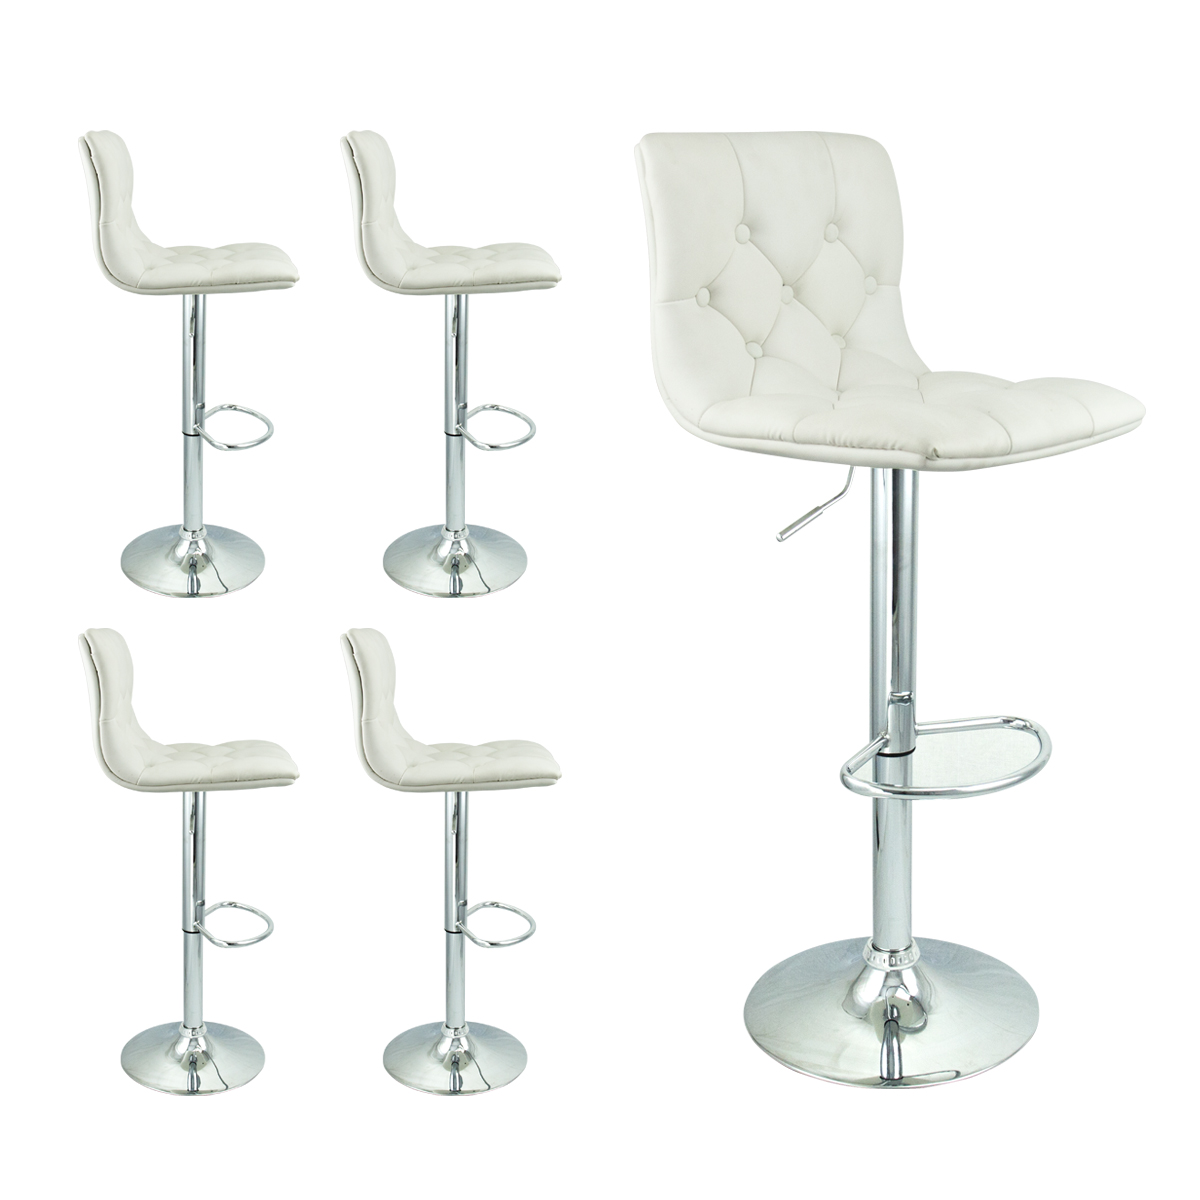 4 barstools swivel seat white pu leather modern adjustable